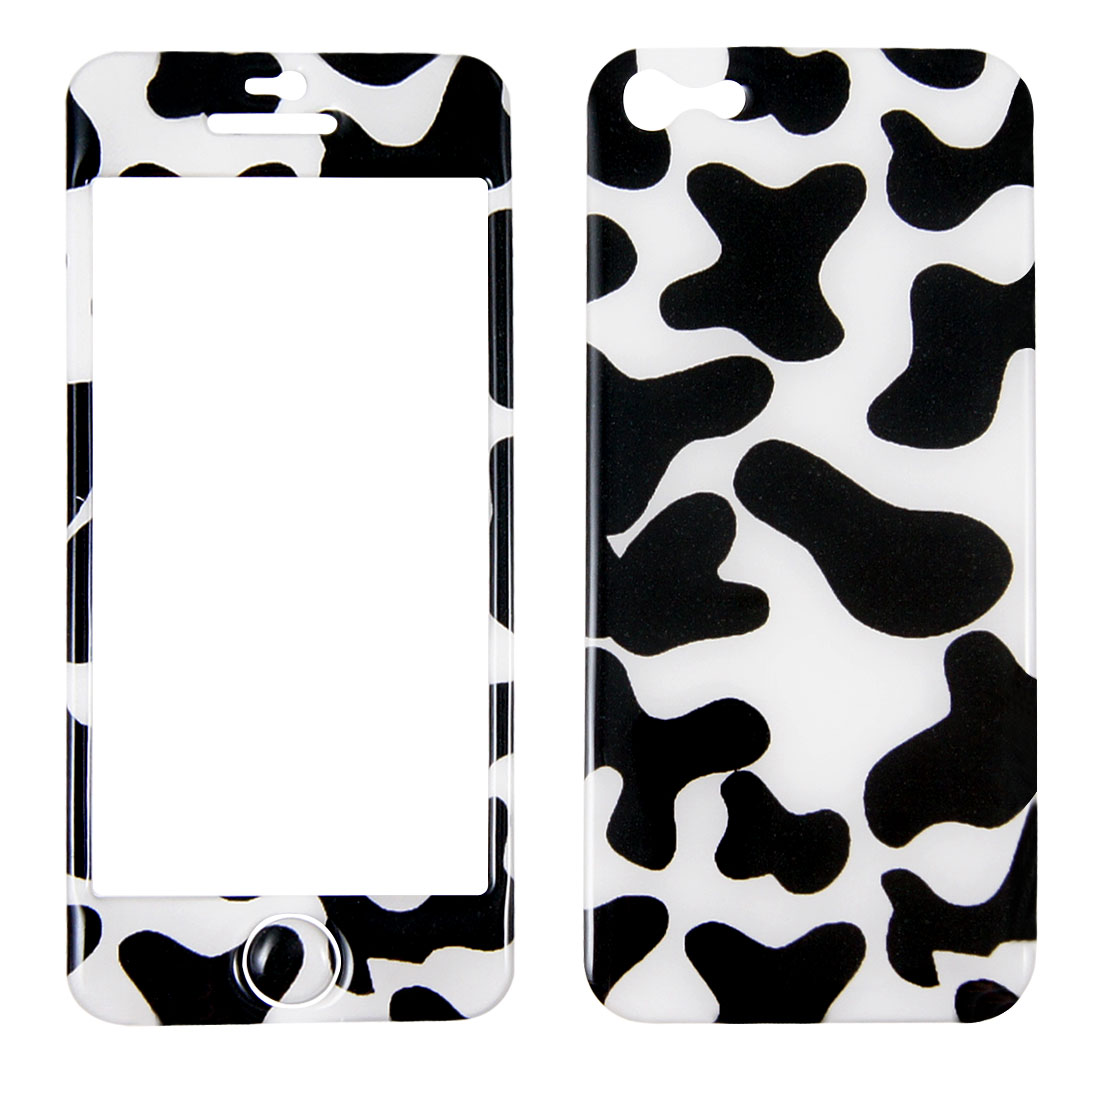 Milk Cow Pattern Front Back Full Cover Sticker Skin Protector for iPhone 5 5G